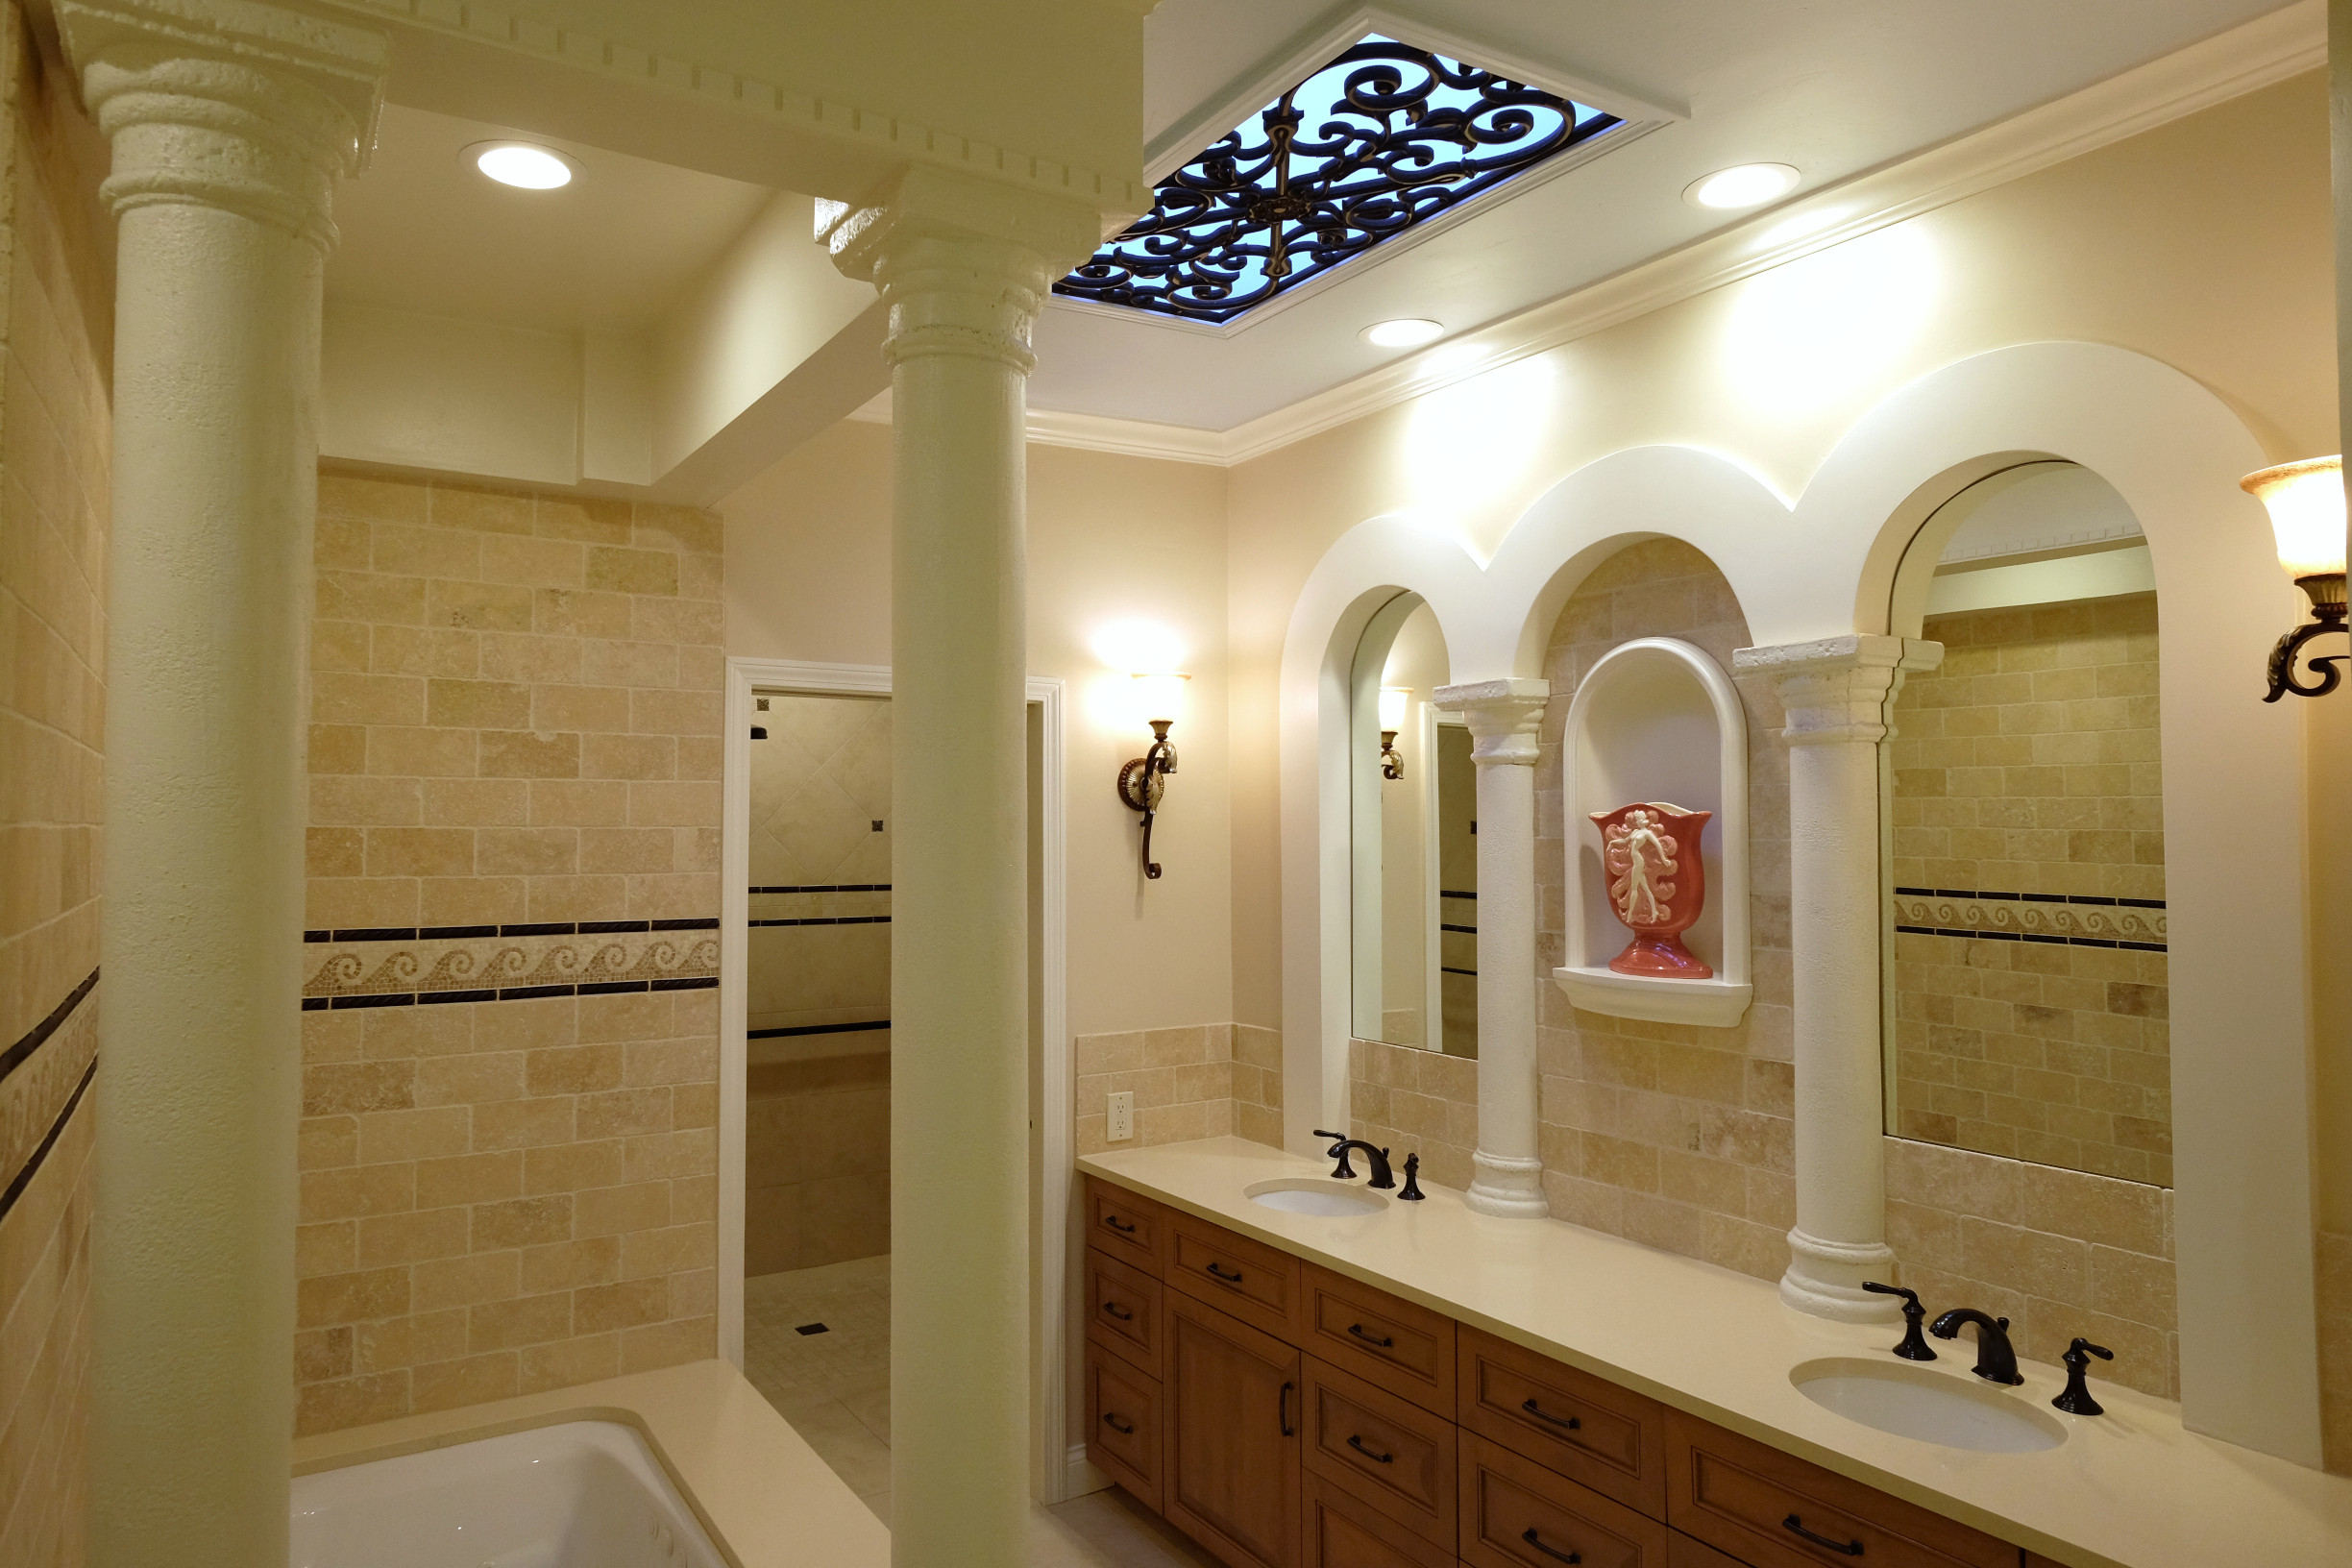 Roman bath with travertine, columns, tile mosaic, and bronze accents